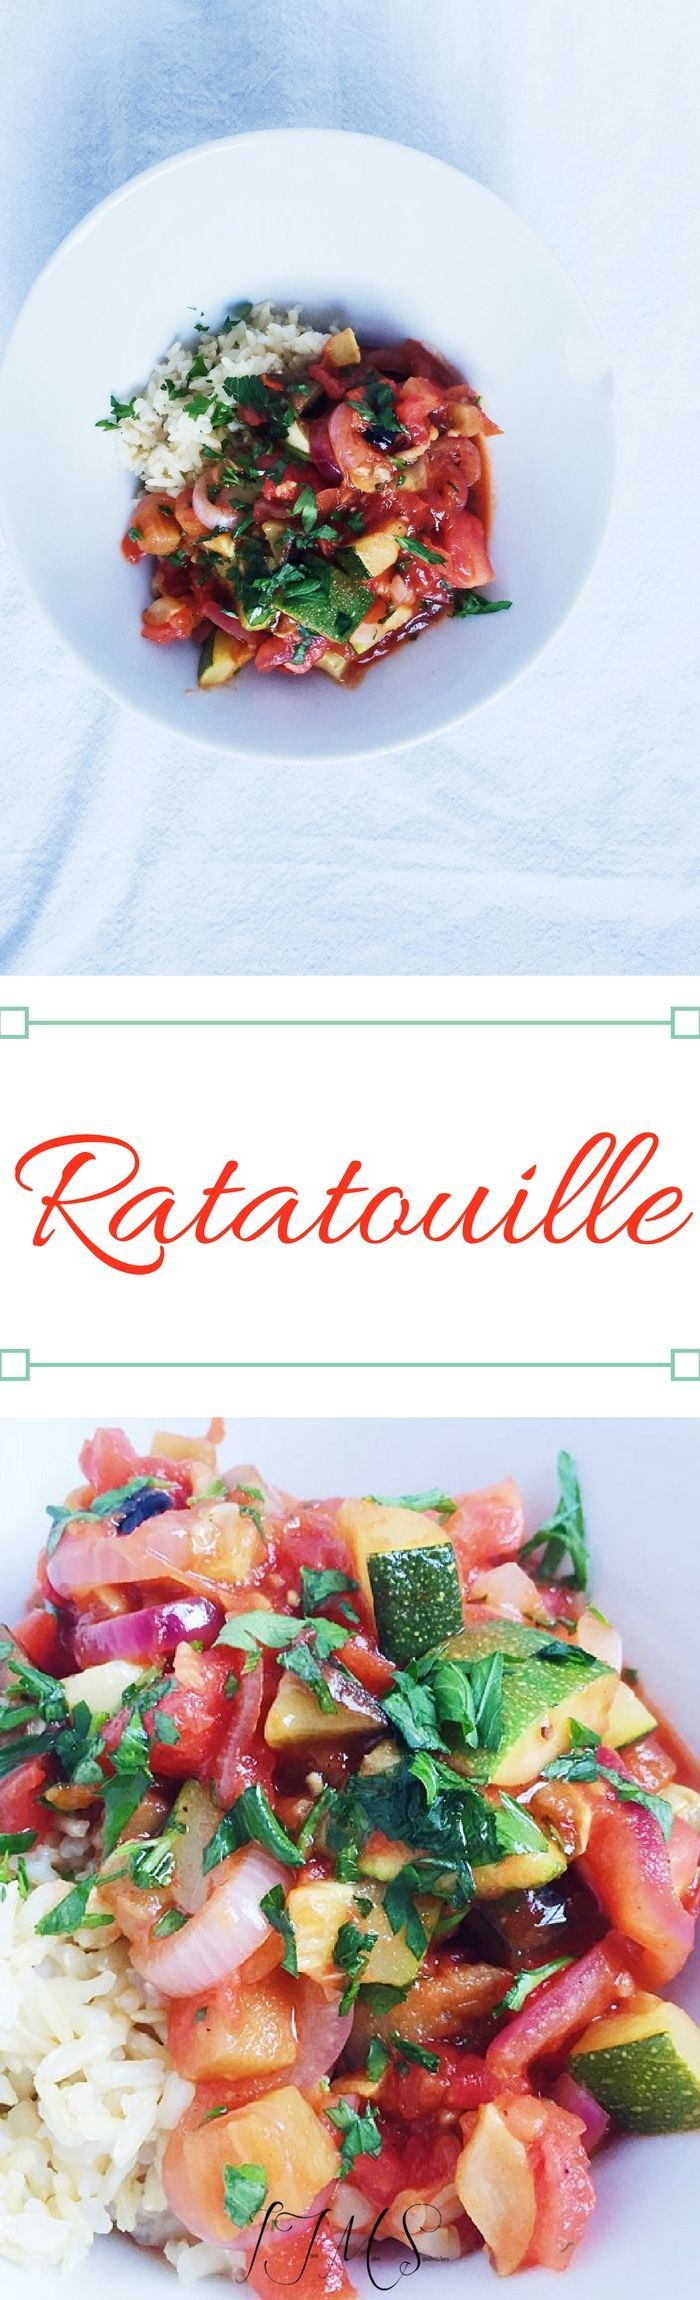 But Ratatouille truly is an incredible summer dish if you think about it. Let me back up here for a second… what exactly is Ratatouille, Marlee???